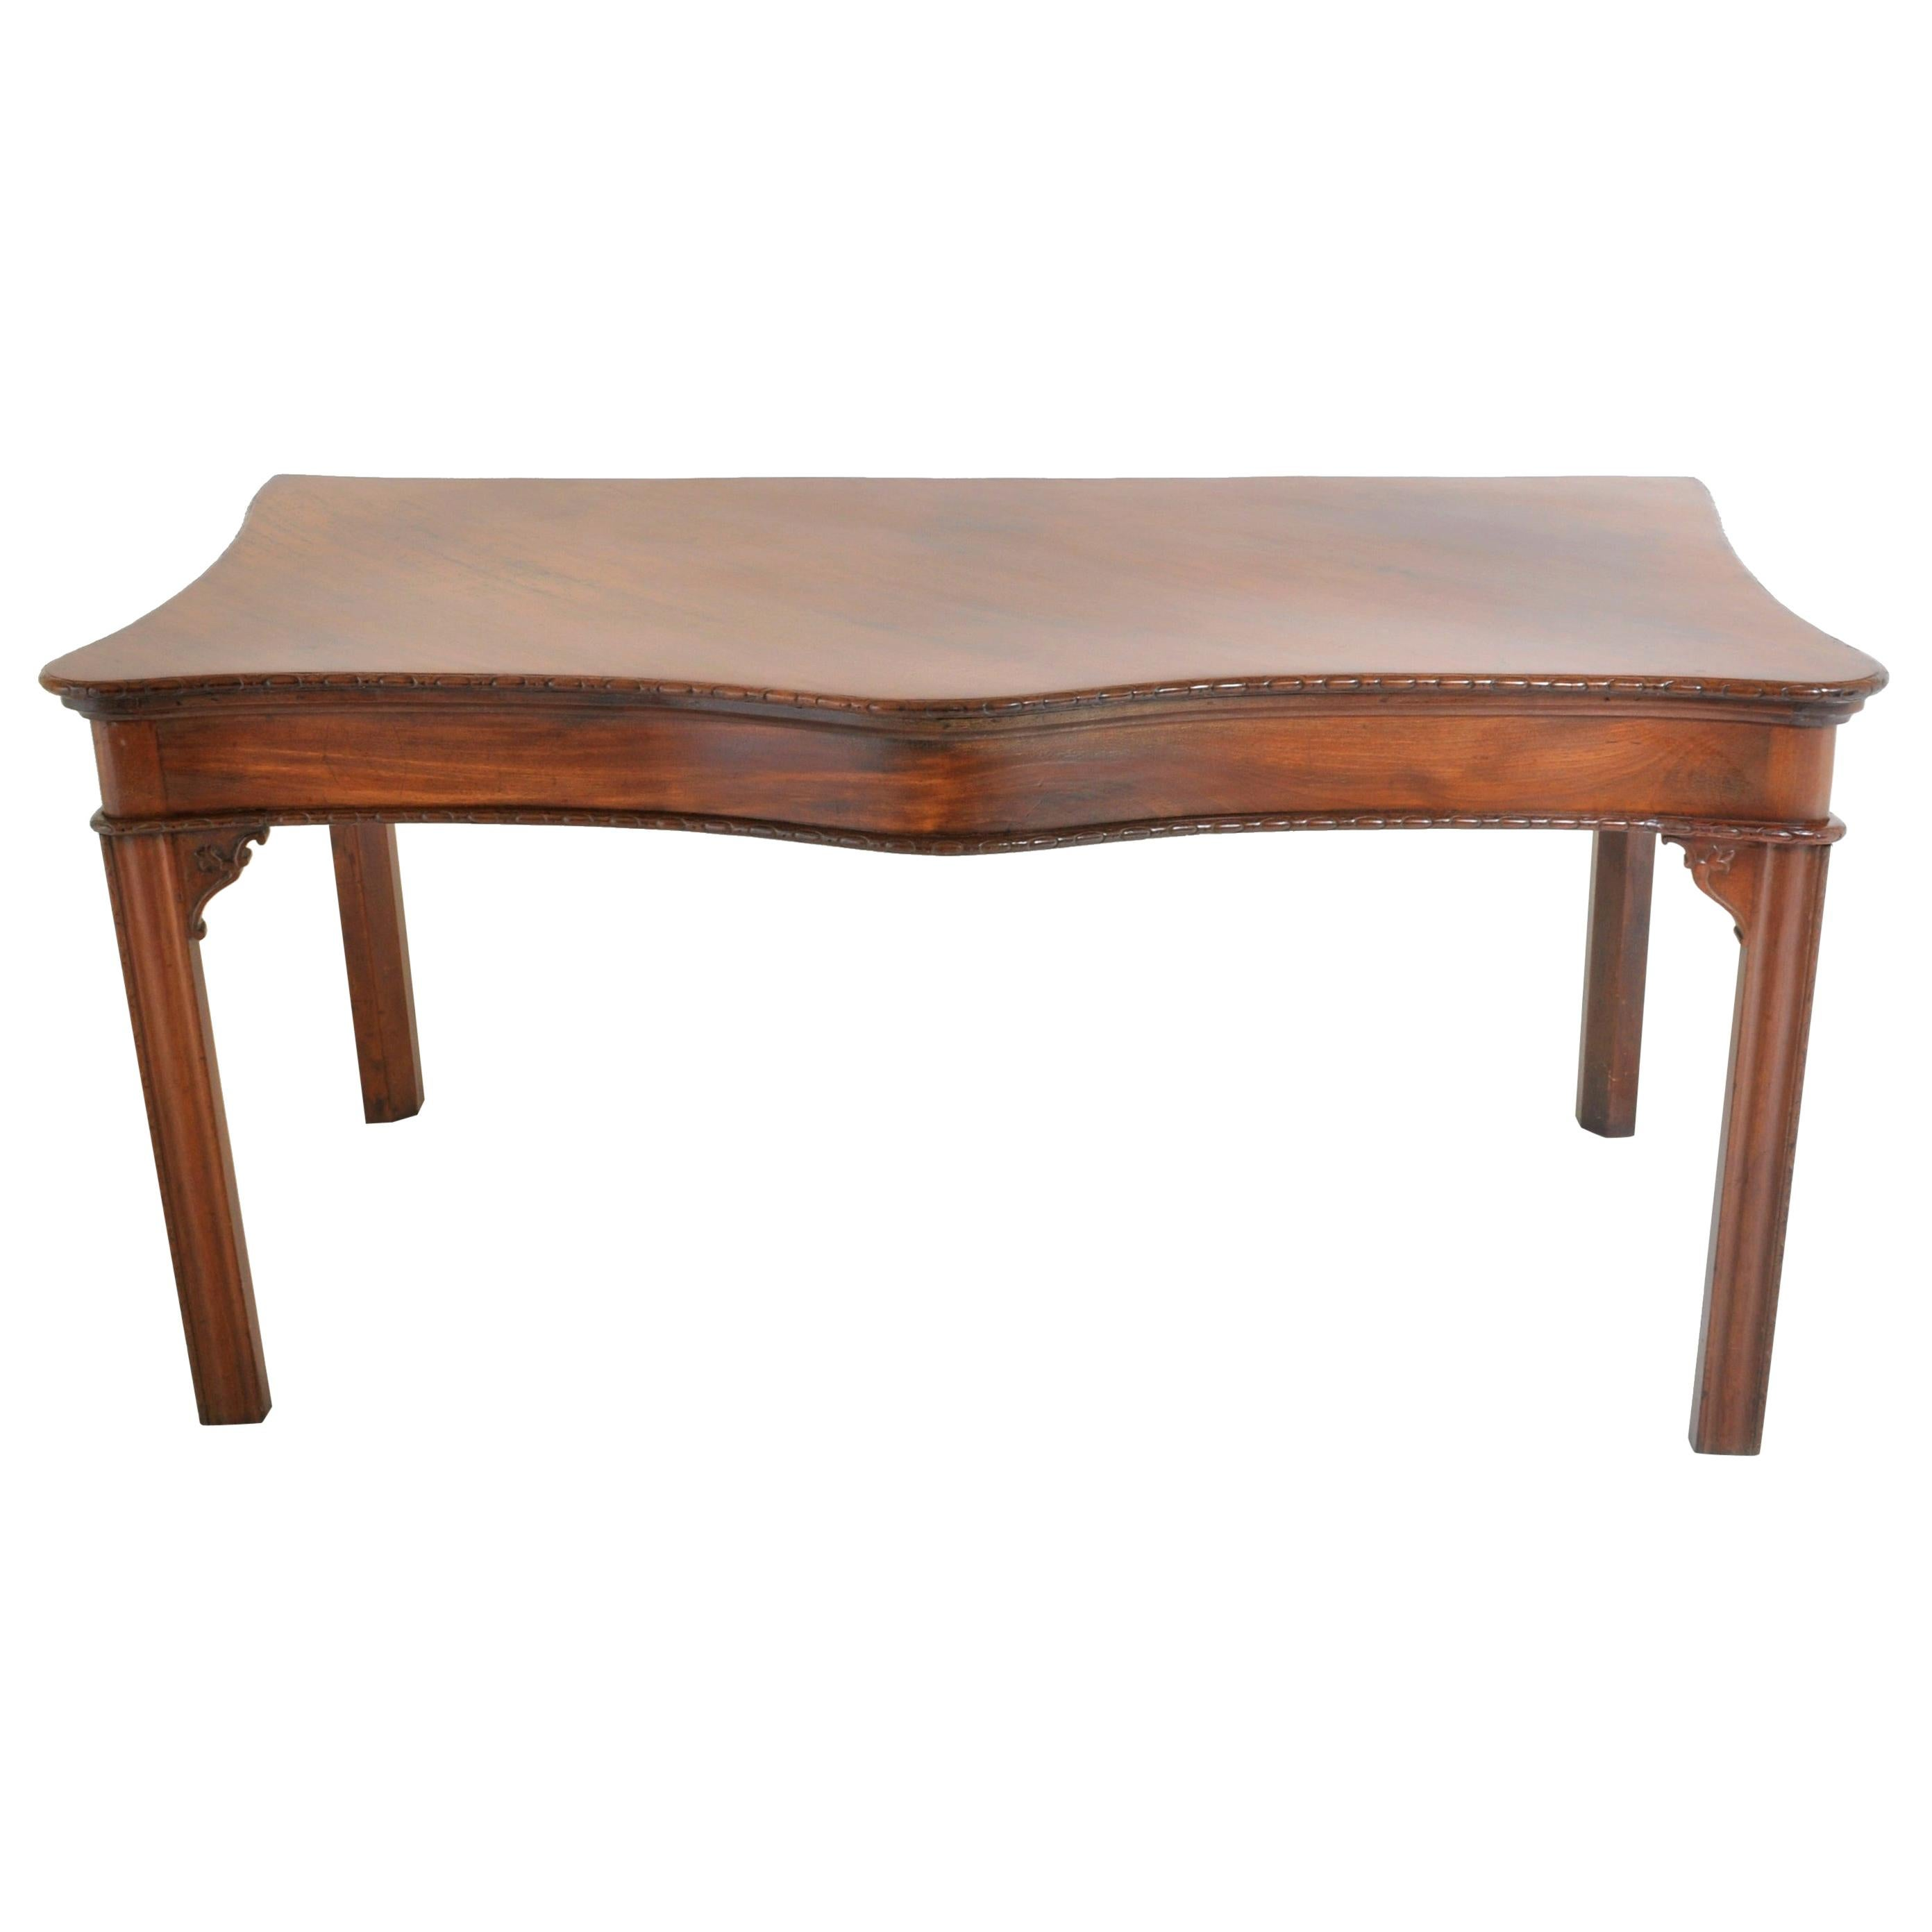 Antique Irish George III Chippendale Mahogany Serving Table/Sideboard